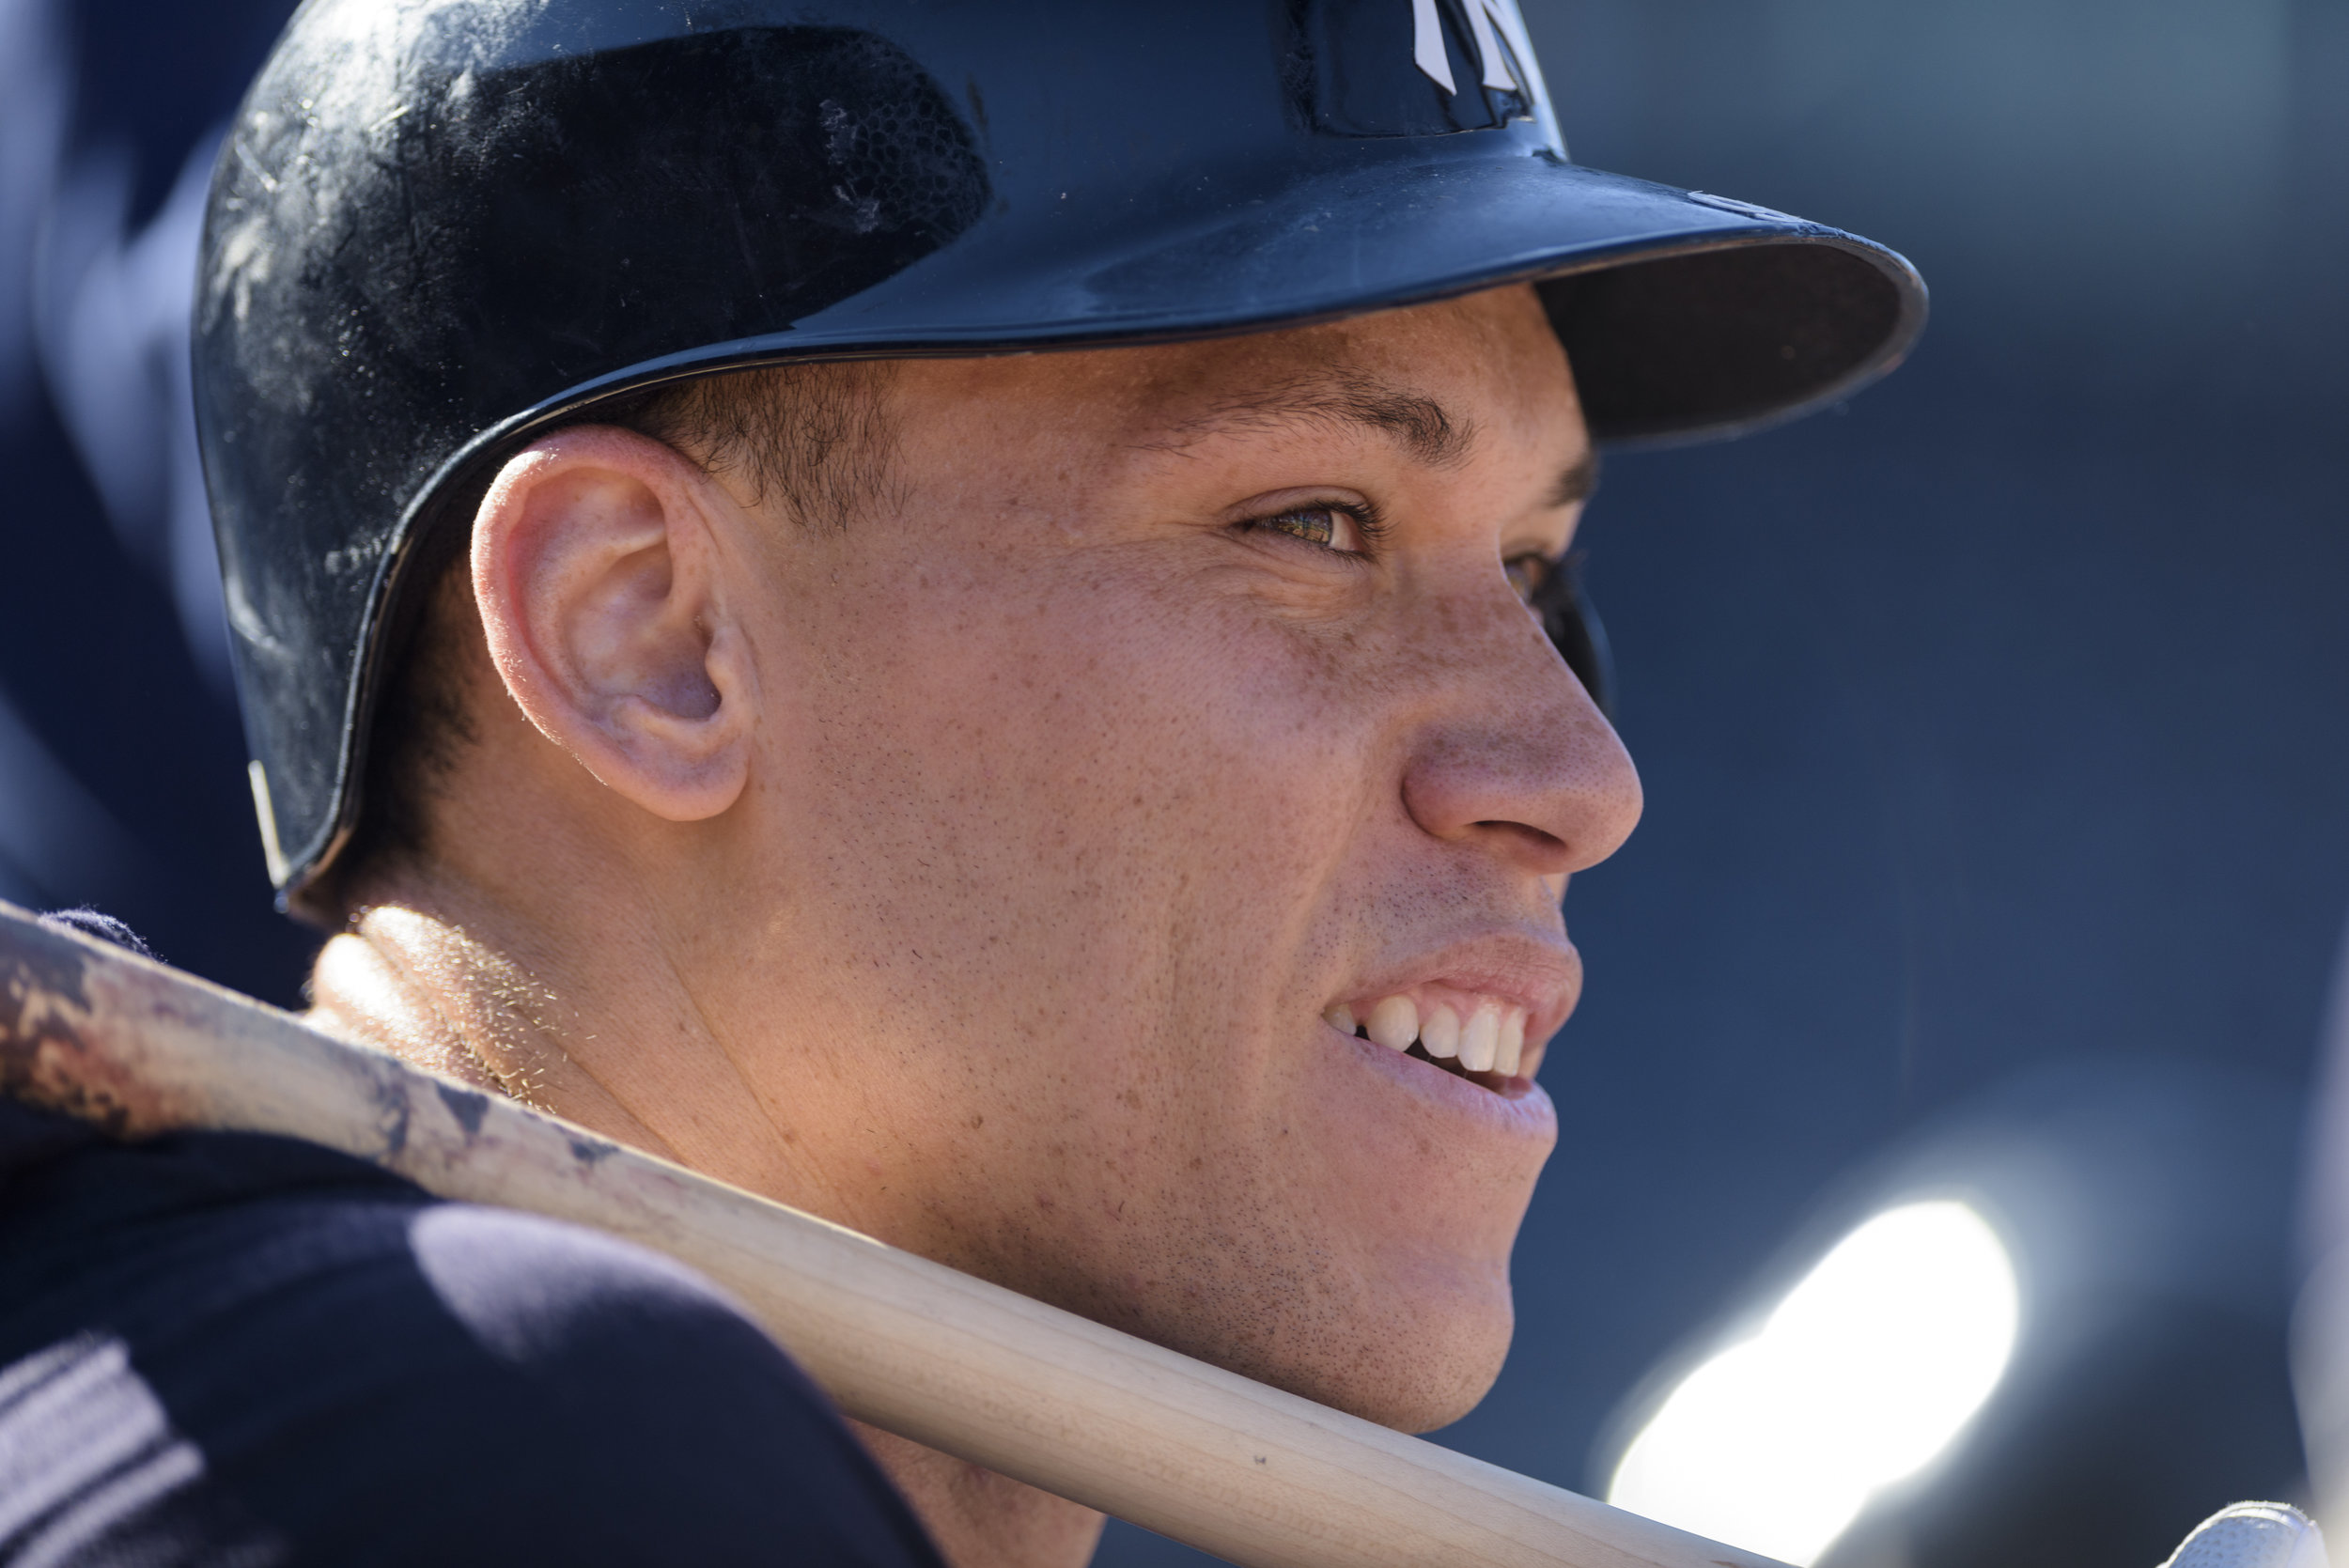 New York Yankees outfielder Aaron Judge watches batting practice with the Wilkes-Barre RailRiders, the Yankees' Triple-A affiliate, on June 14, 2019 at Durham Bulls Athletic Park in Durham, NC.